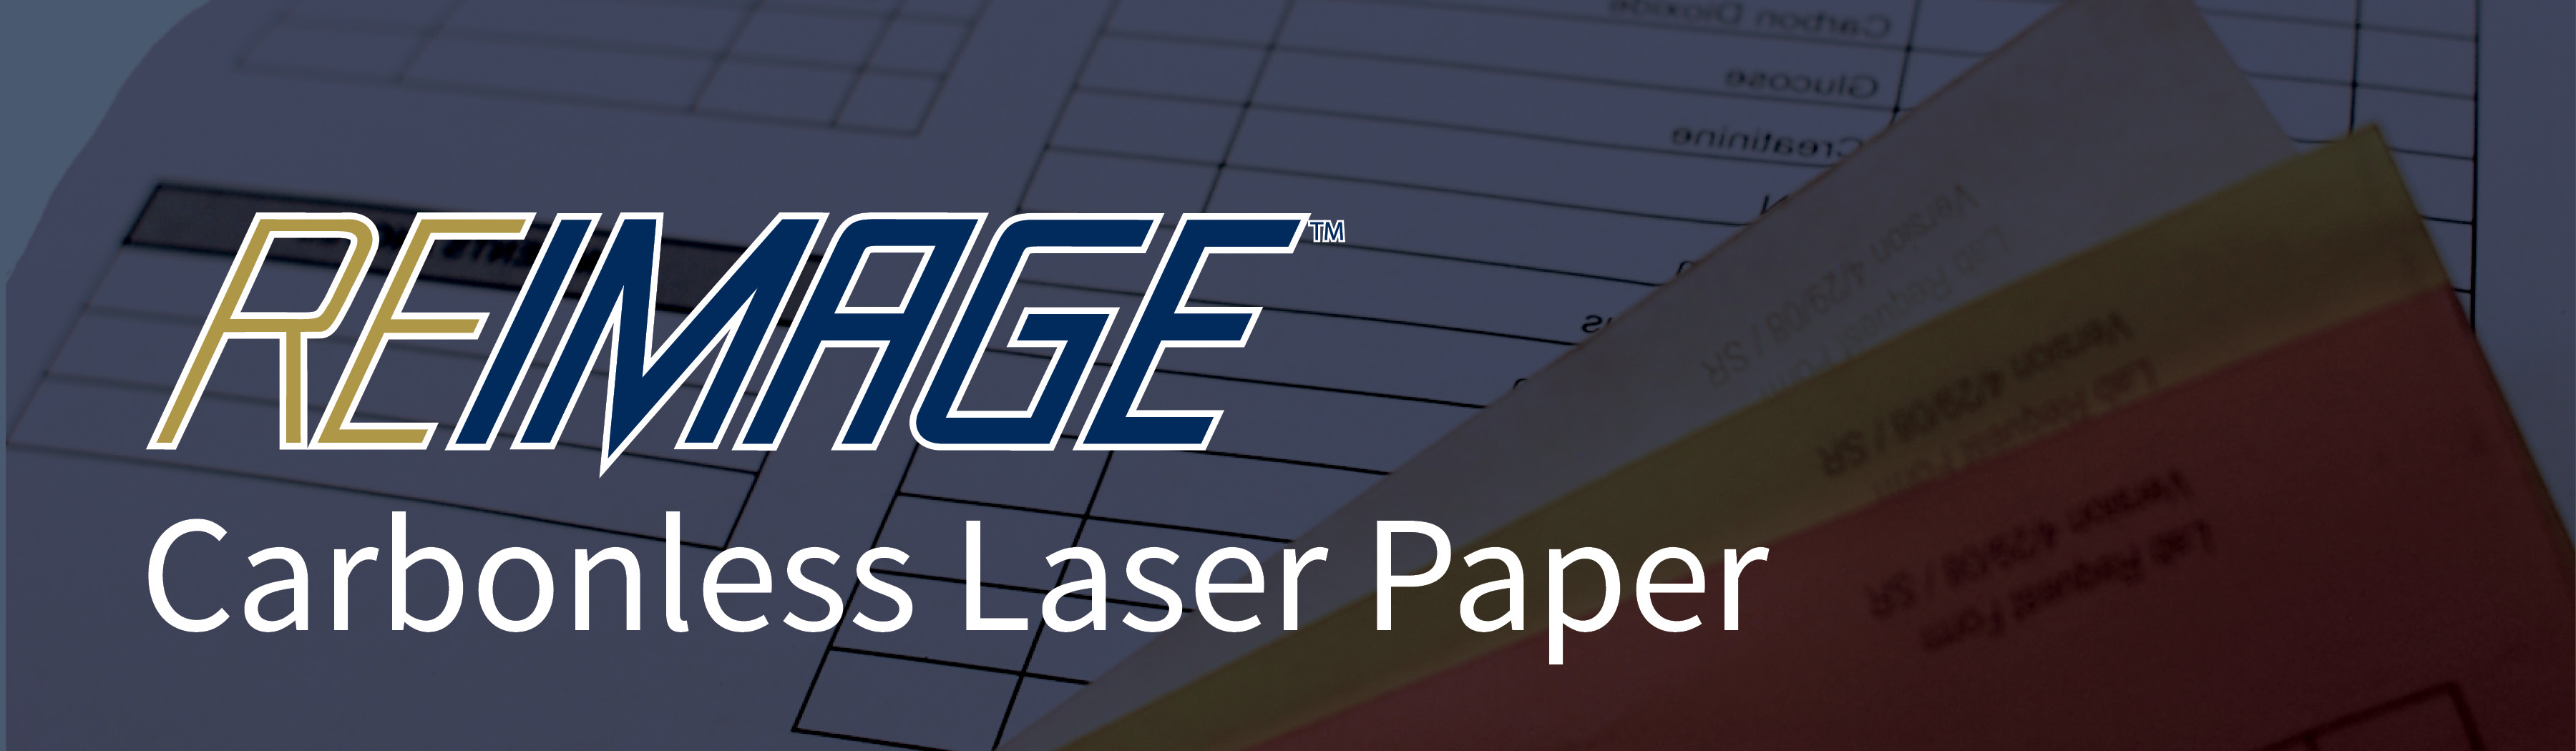 REIMAGE Carbonless Laser Paper